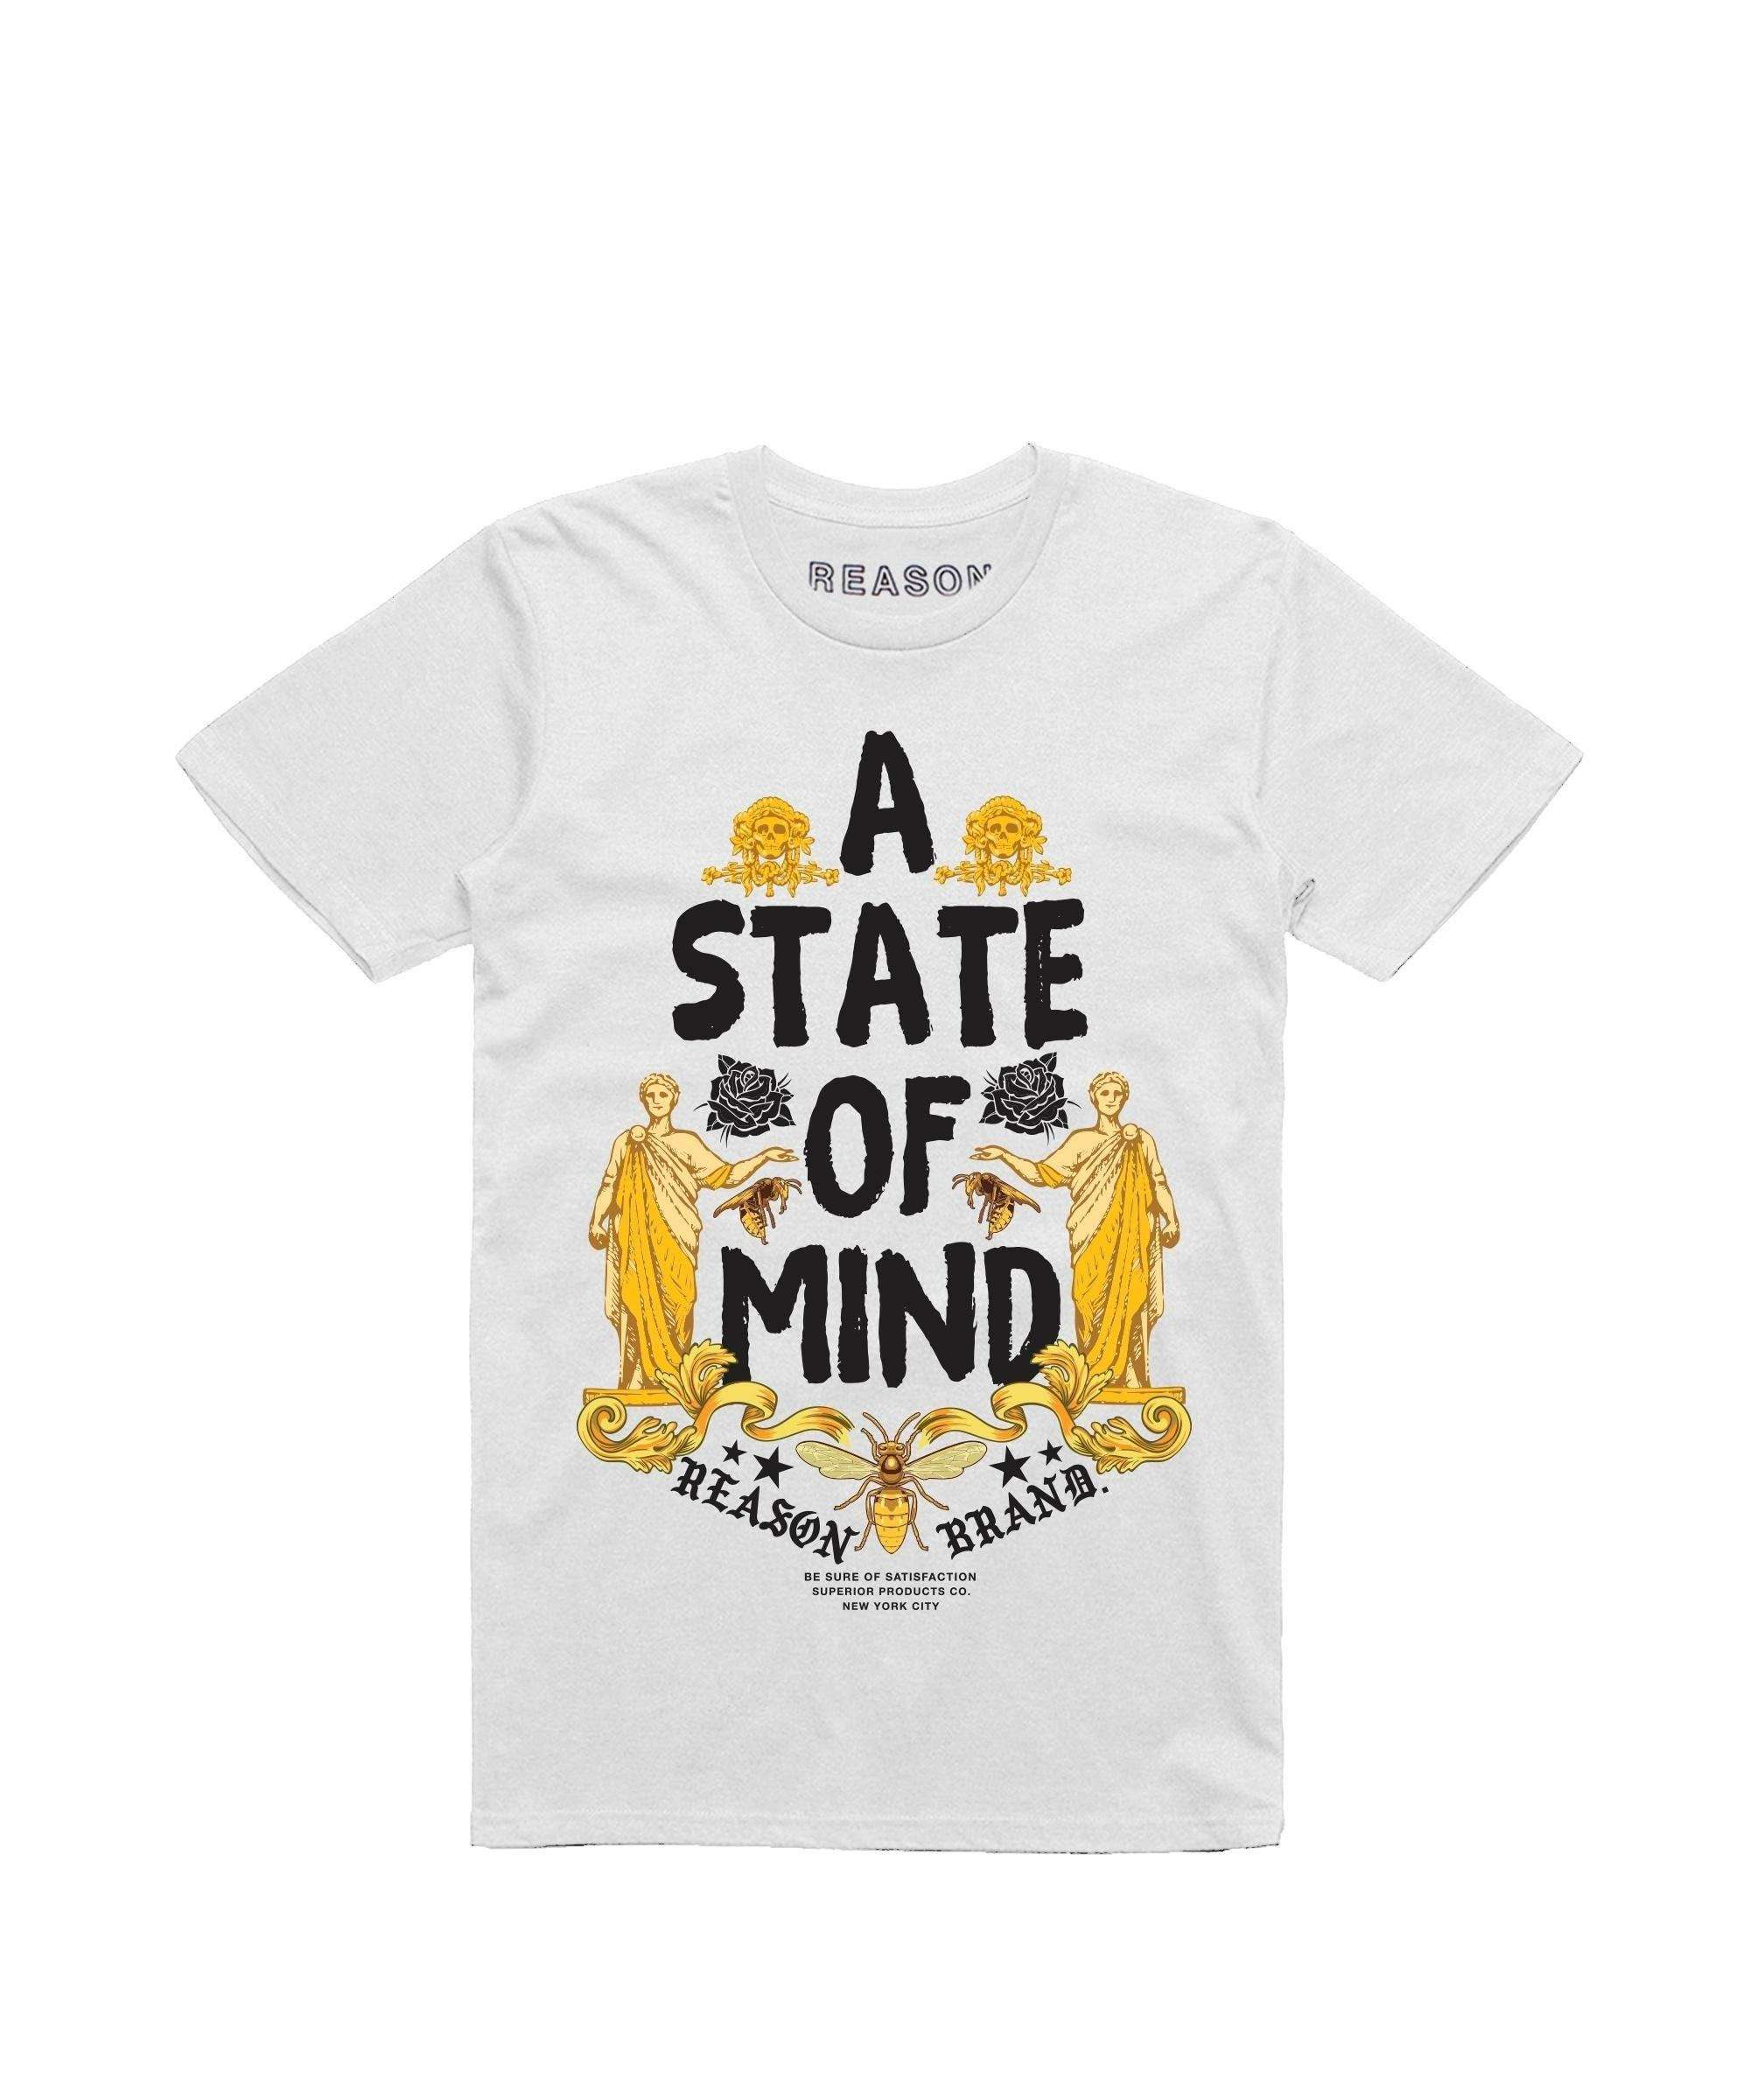 STATE OF MIND TEE Reason Clothing